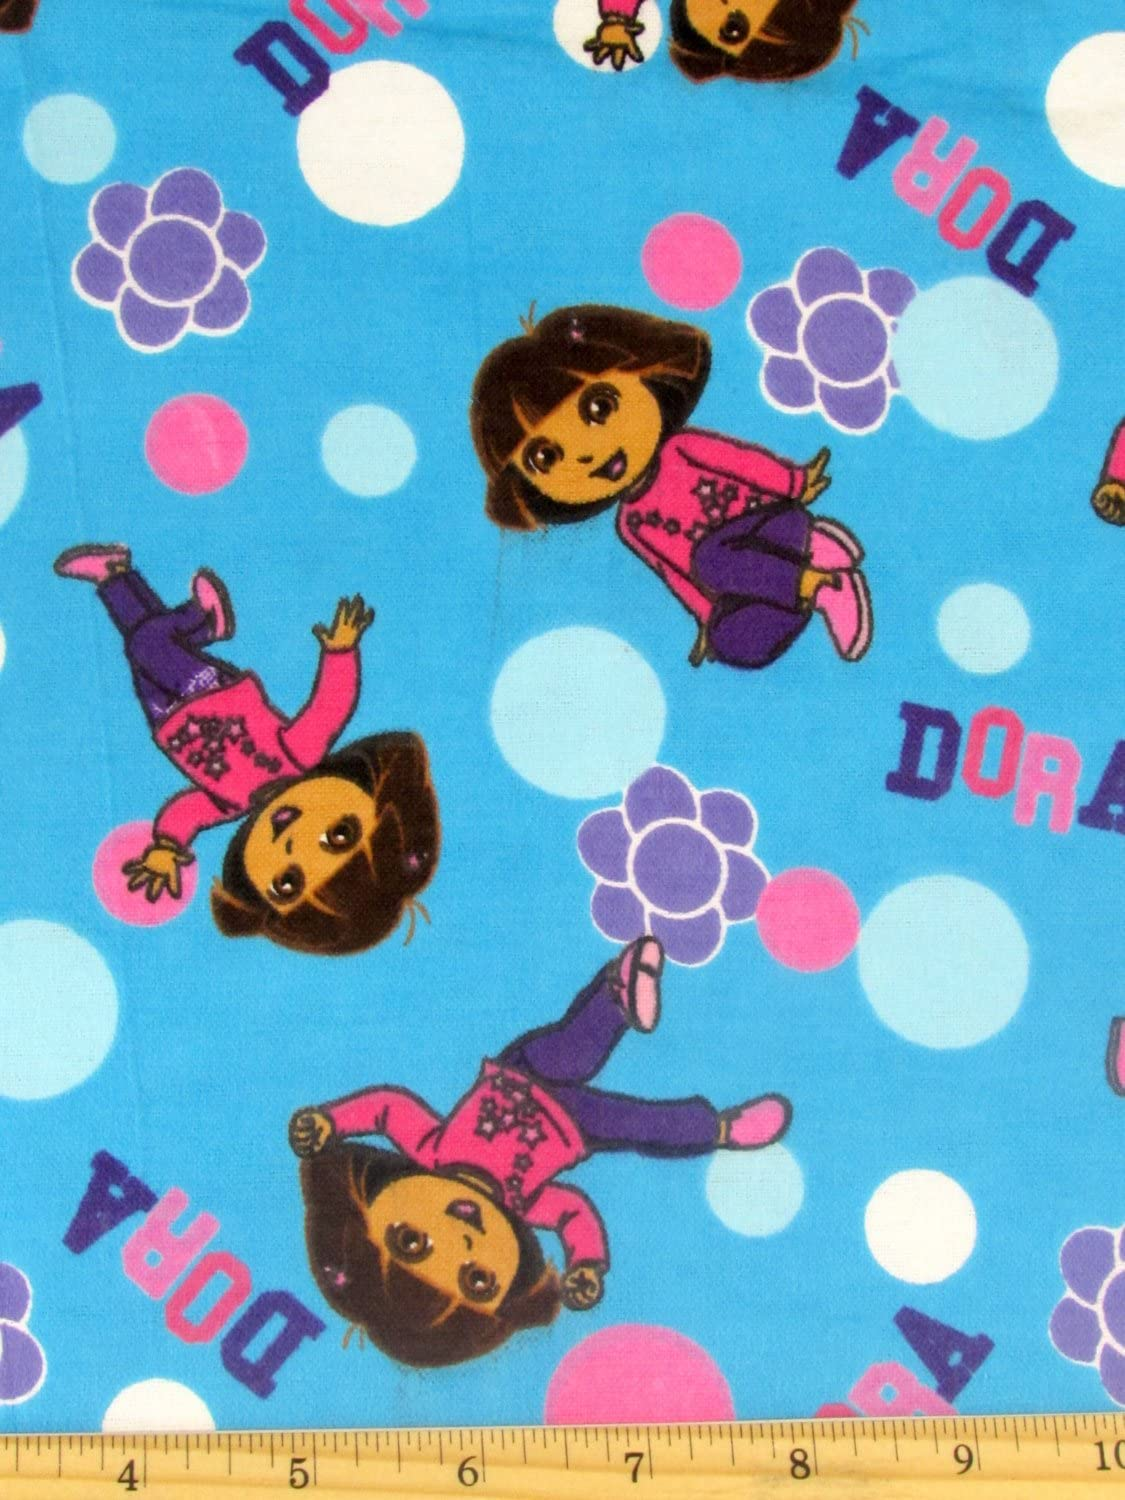 Flannel Dora Floral Toss Cheap mail 2021new shipping free shipping order sales Fabric The by Yard Sold